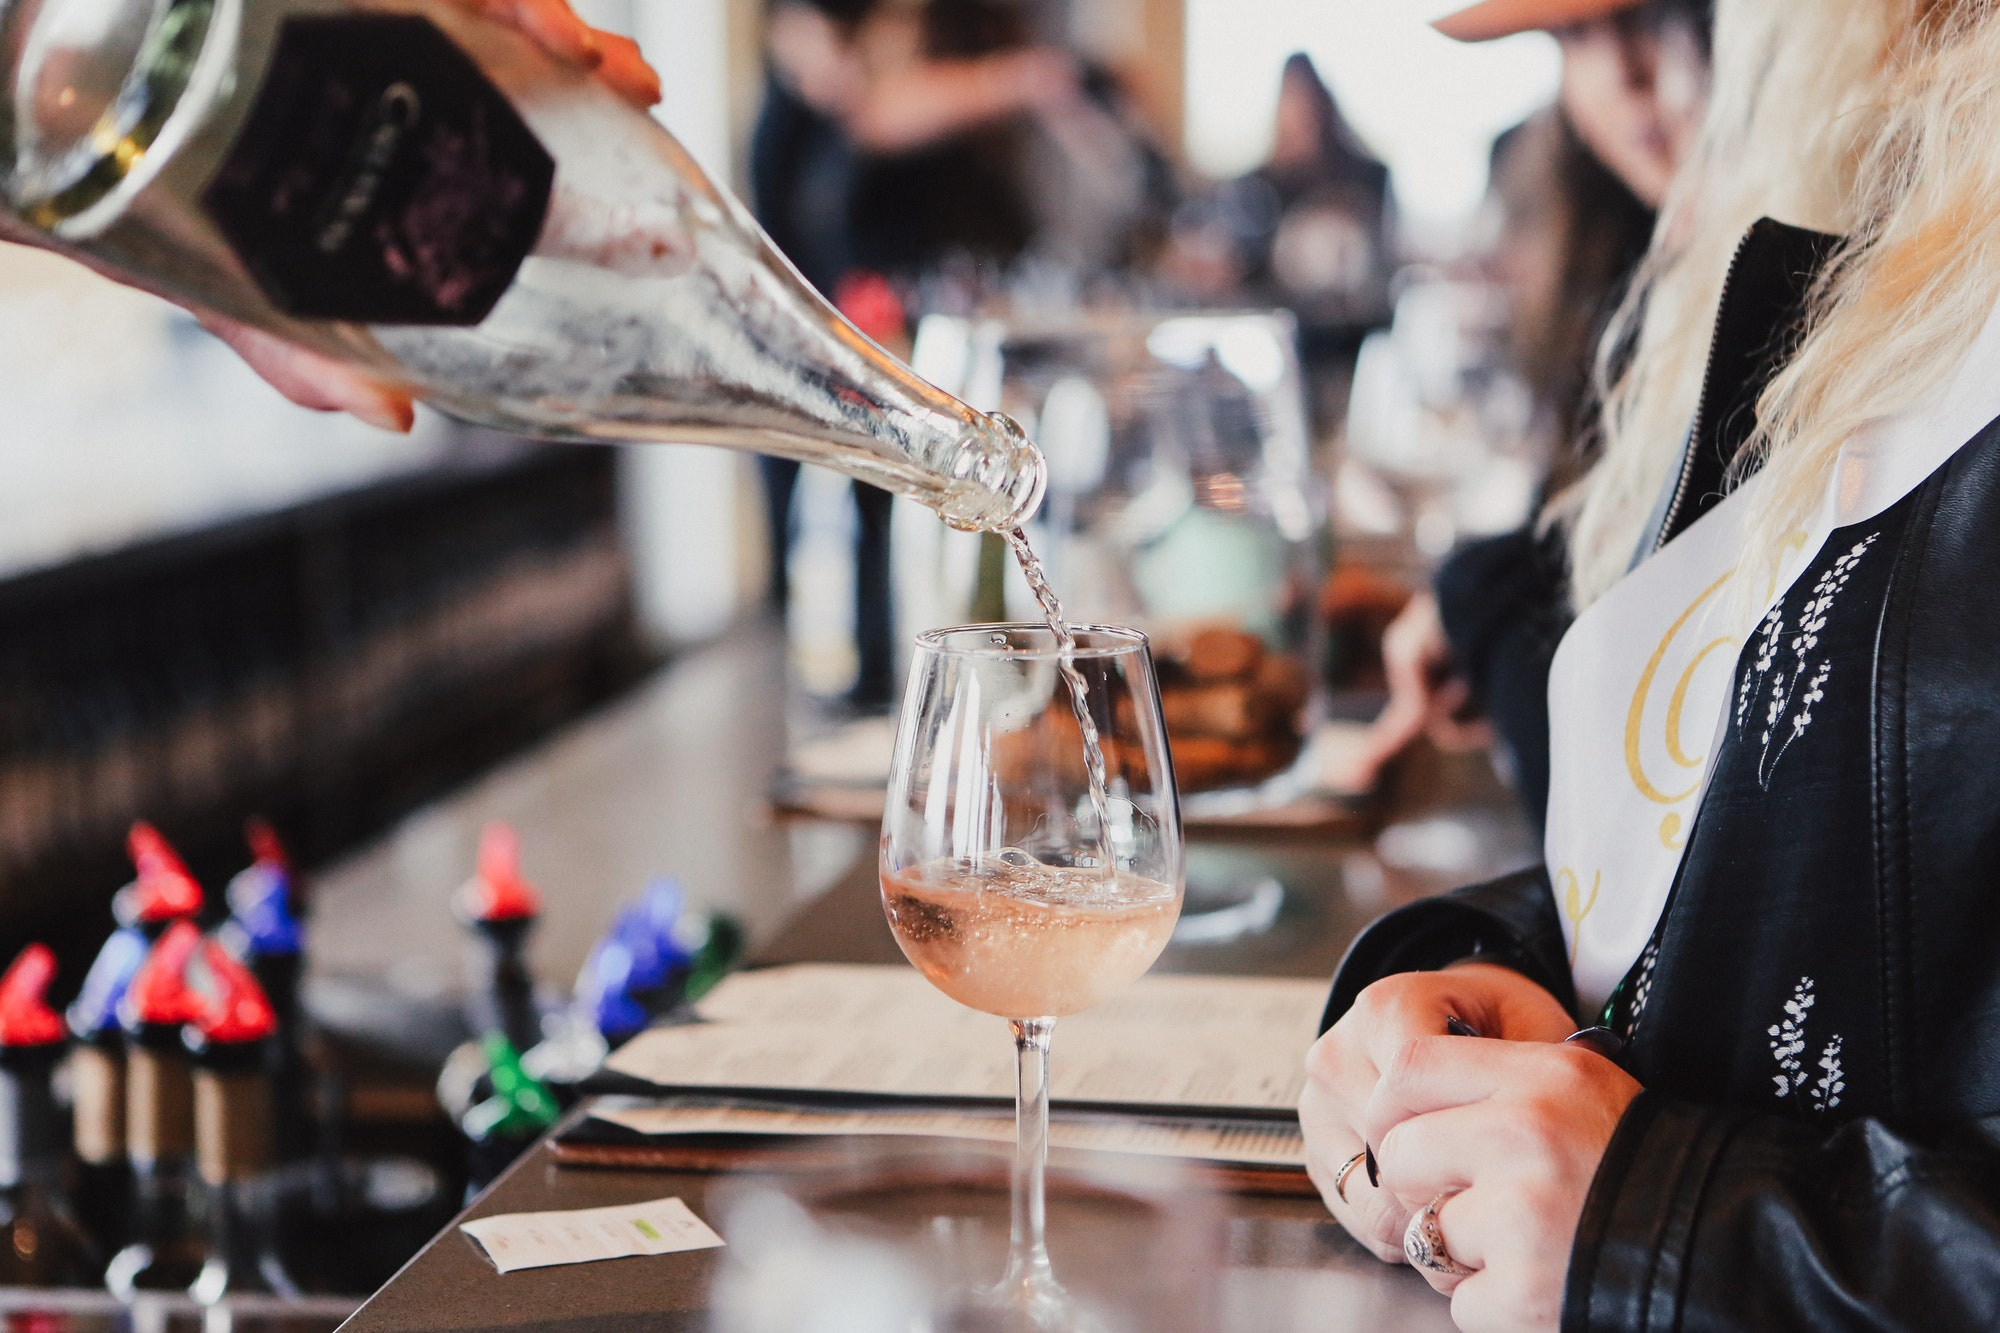 Pouring wine for wine tasting